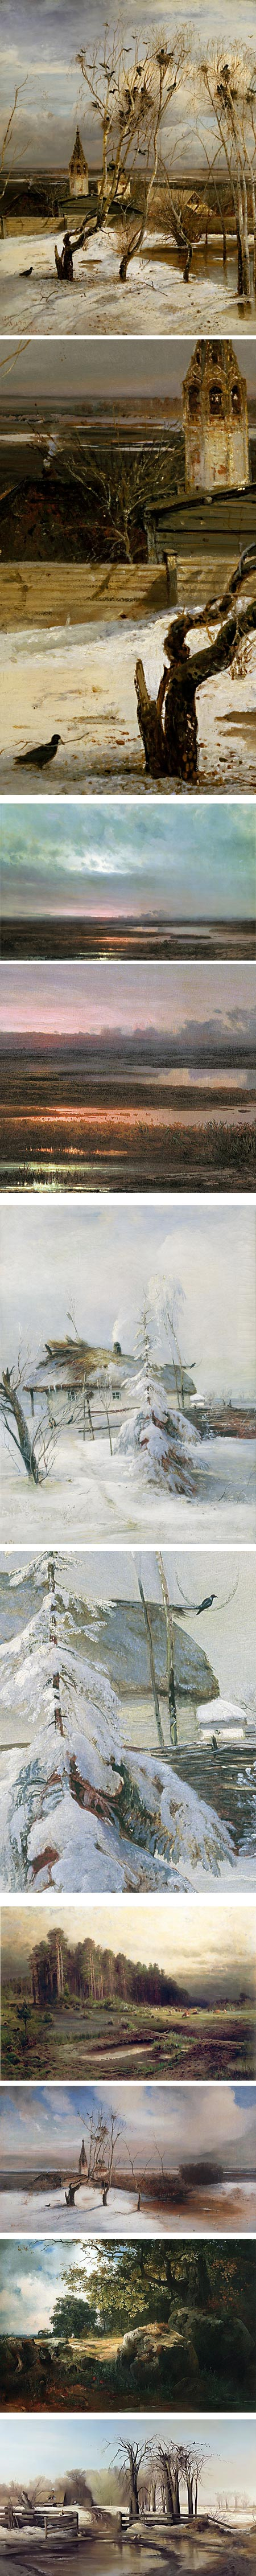 Alexei Savrasov